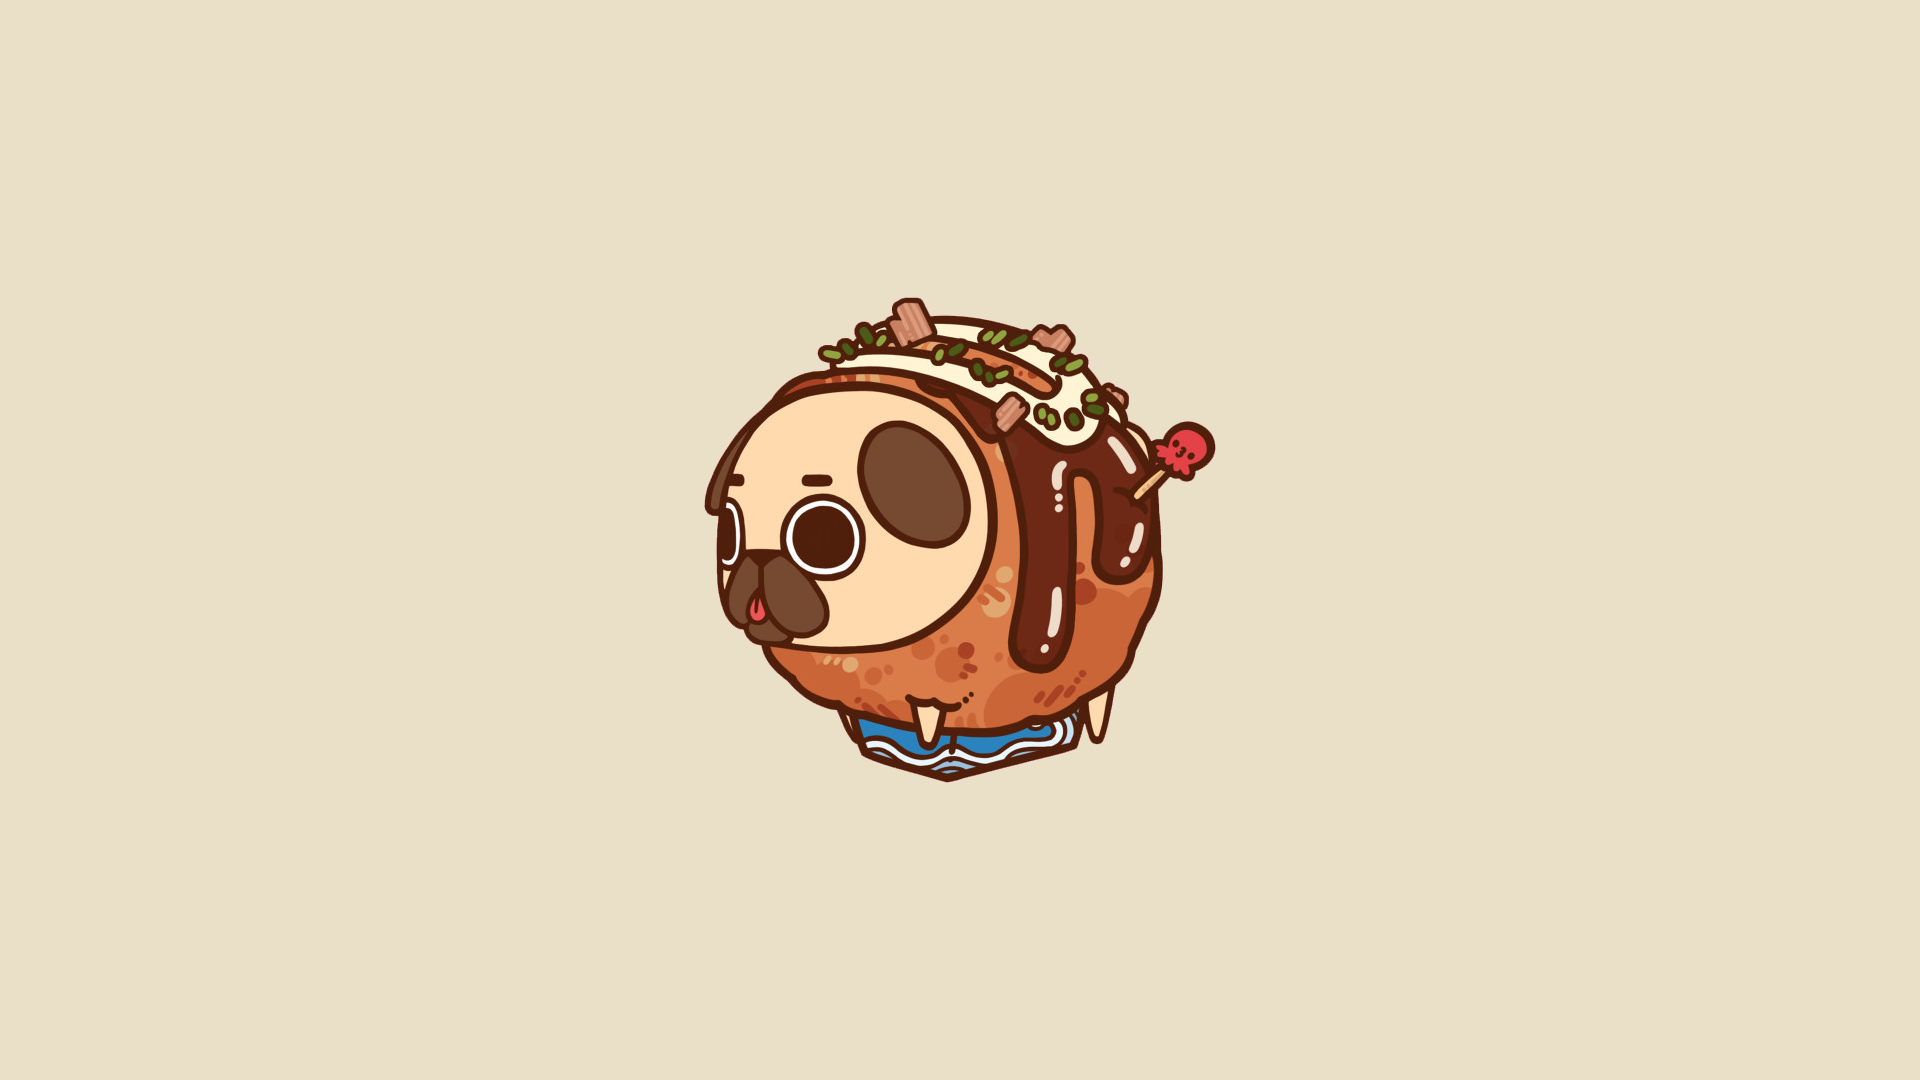 Album: I made some Puglie wallpapers Tags: /r/wallpapers Food Emblem Accessories Logo Trademark Chocolate Dessert Bead.